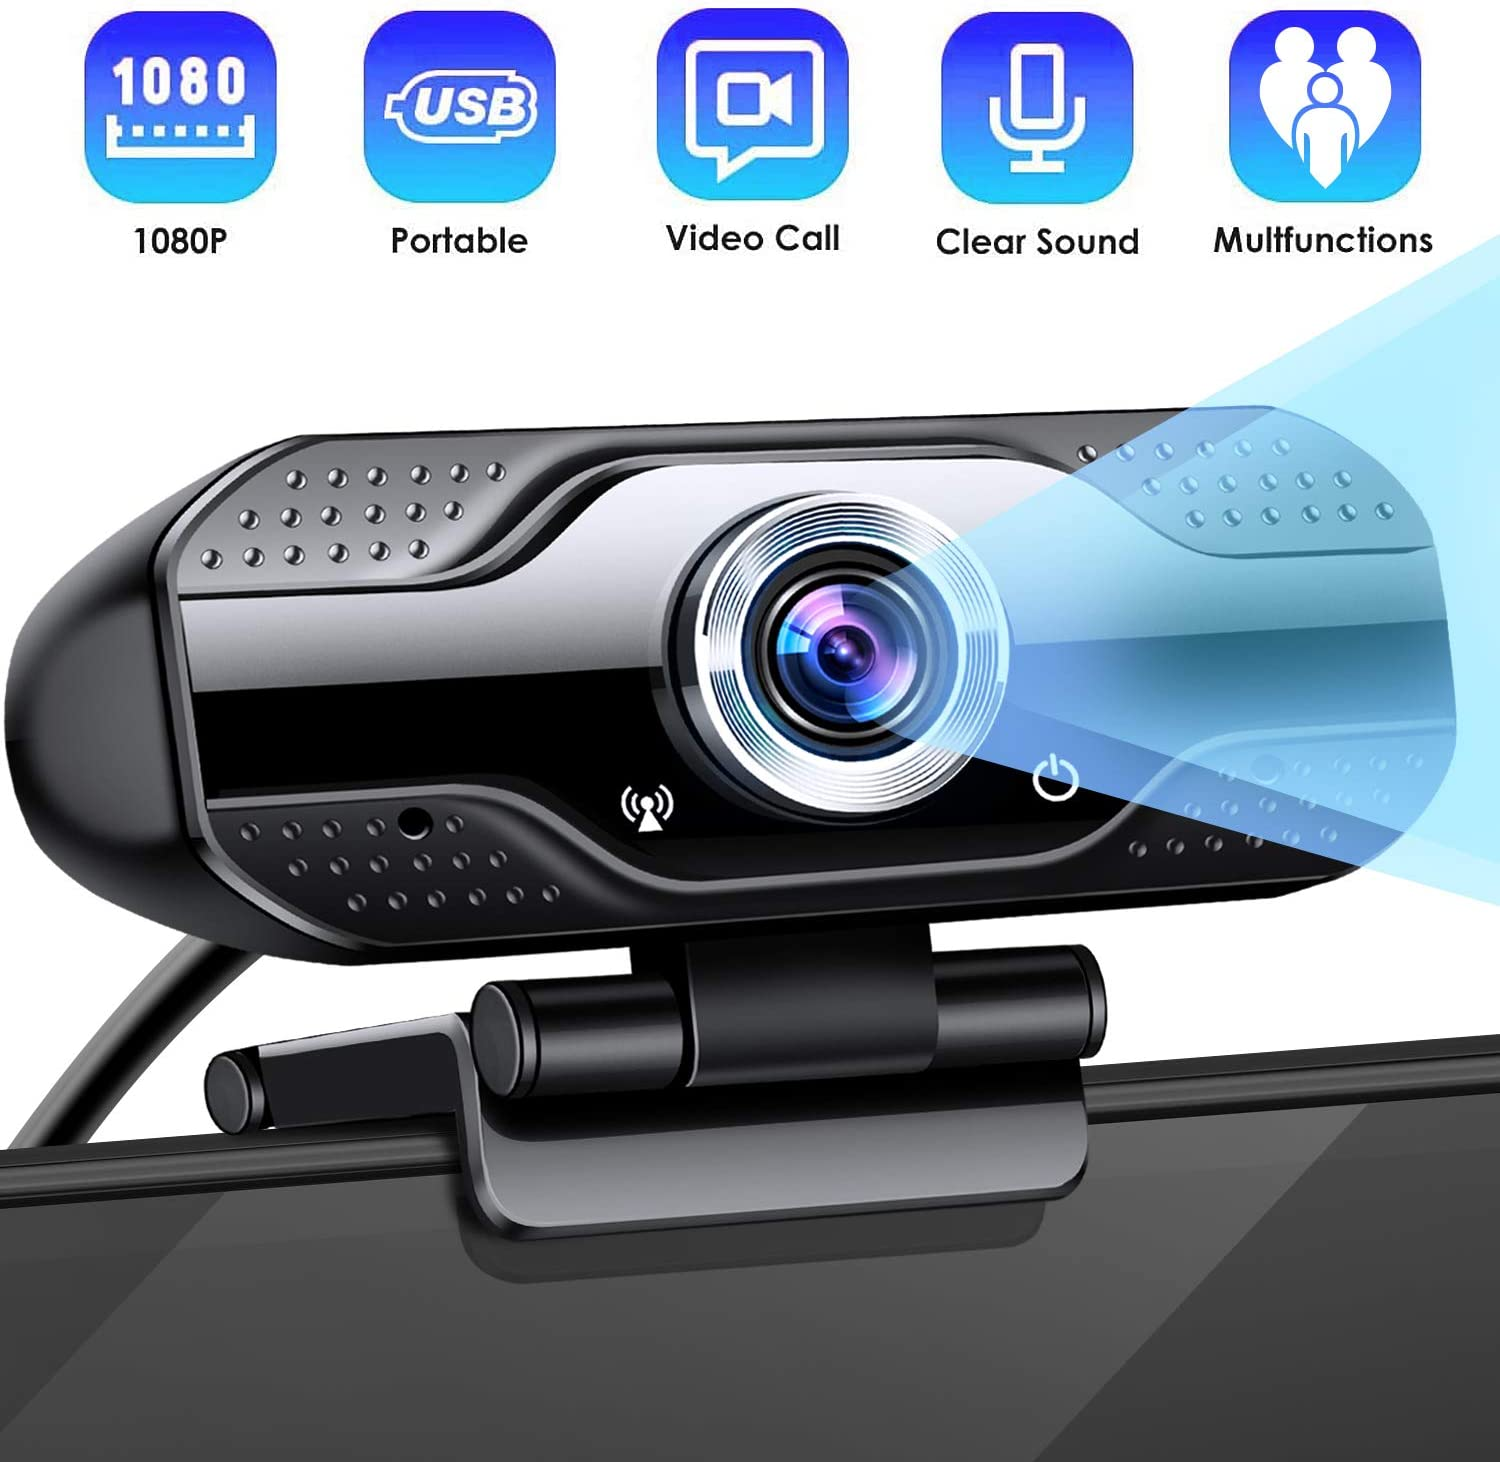 CLEEBOURG 1080P HD Webcam Web Camera Dual Built-in Microphones,Plug & Play USB Web cam with 110-Degree Wide View Angle Widescreen Webcam for Calling, Conferencing, Skype,Video Conference